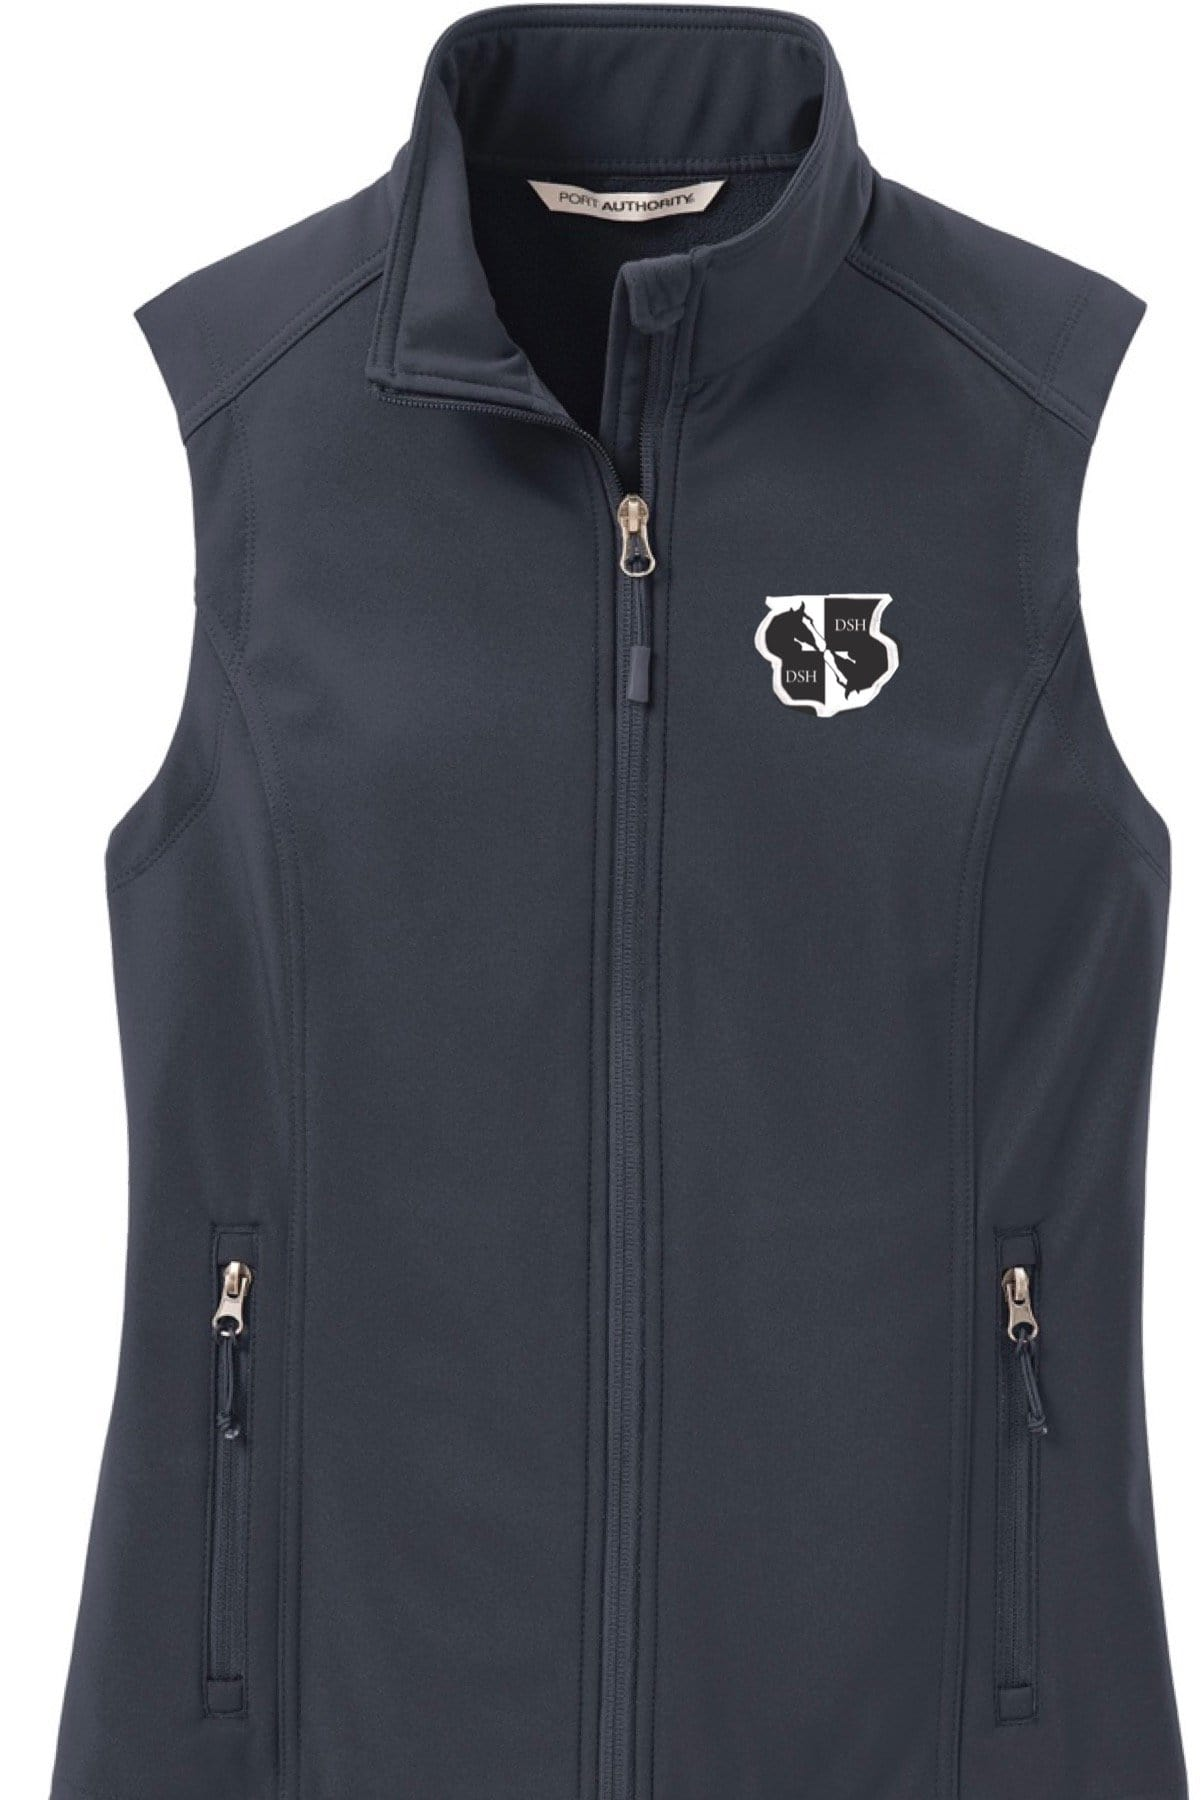 Equestrian Team Apparel Custom Team Jackets DSH VEST equestrian team apparel online tack store mobile tack store custom farm apparel custom show stable clothing equestrian lifestyle horse show clothing riding clothes horses equestrian tack store